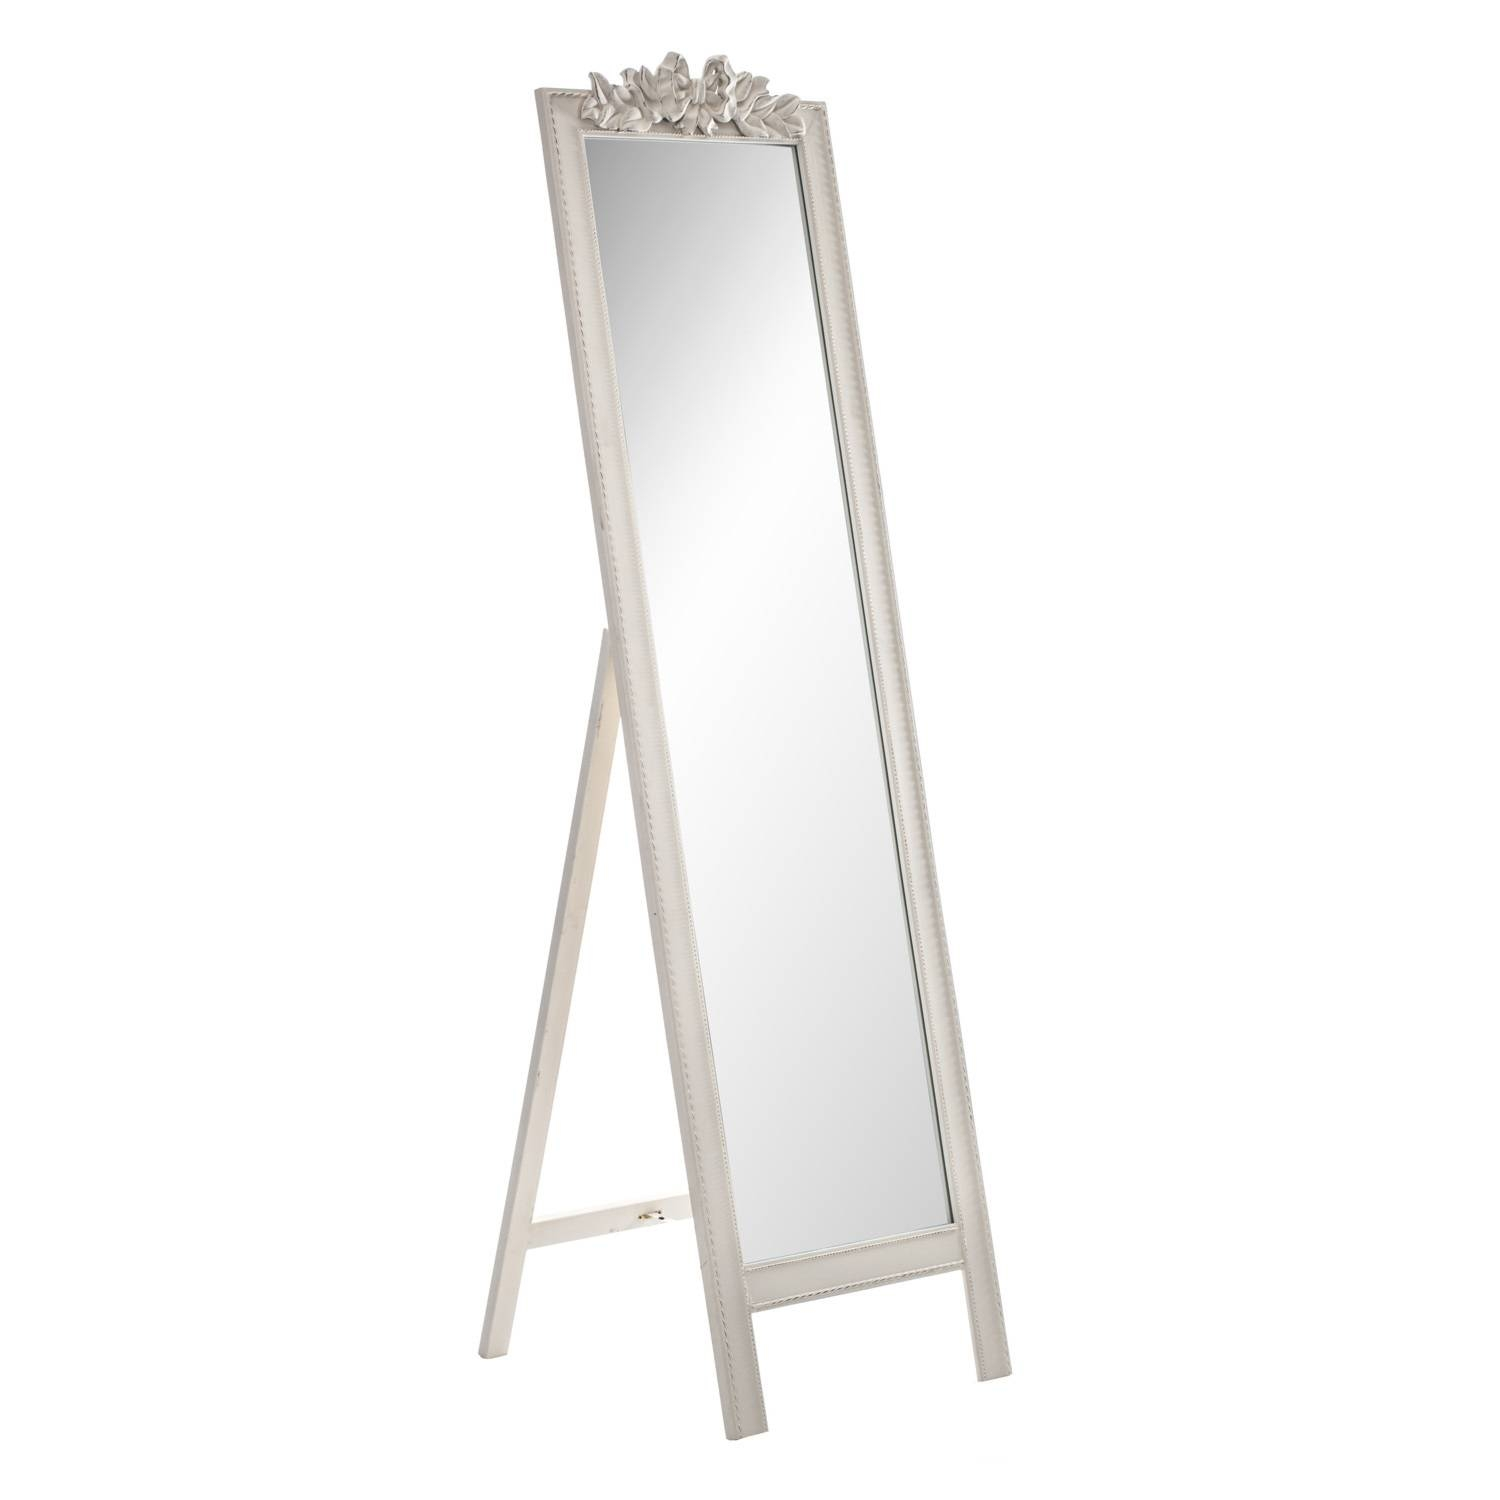 Homeware: Oval Full Length Standing Mirror | Large Floor Mirrors within Free Stand Mirrors (Image 6 of 15)